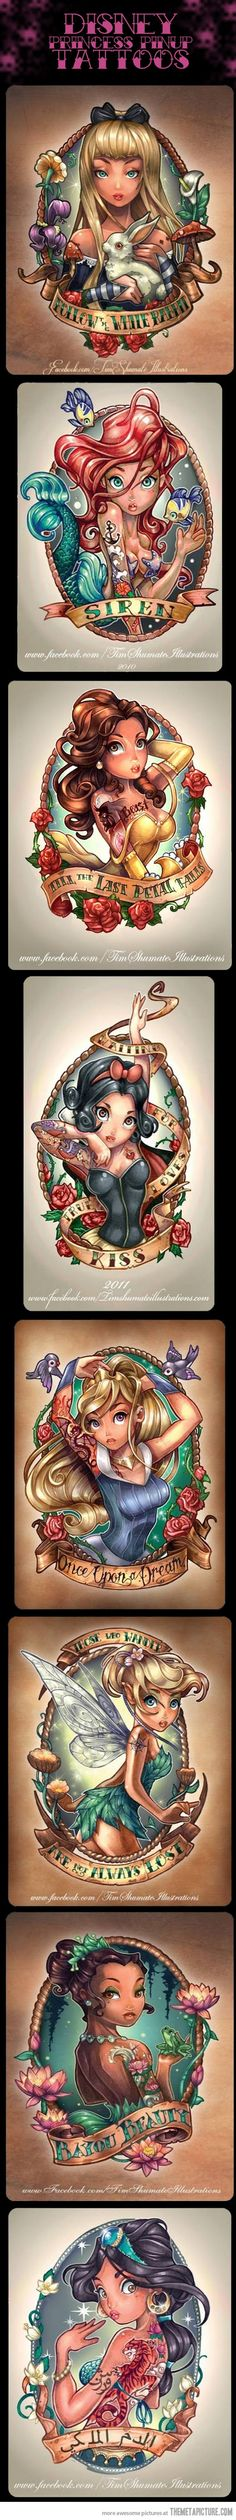 8 Very Cool Disney Princess Pinup Tattoos. Wouldn't get them for myself, but they're super pretty